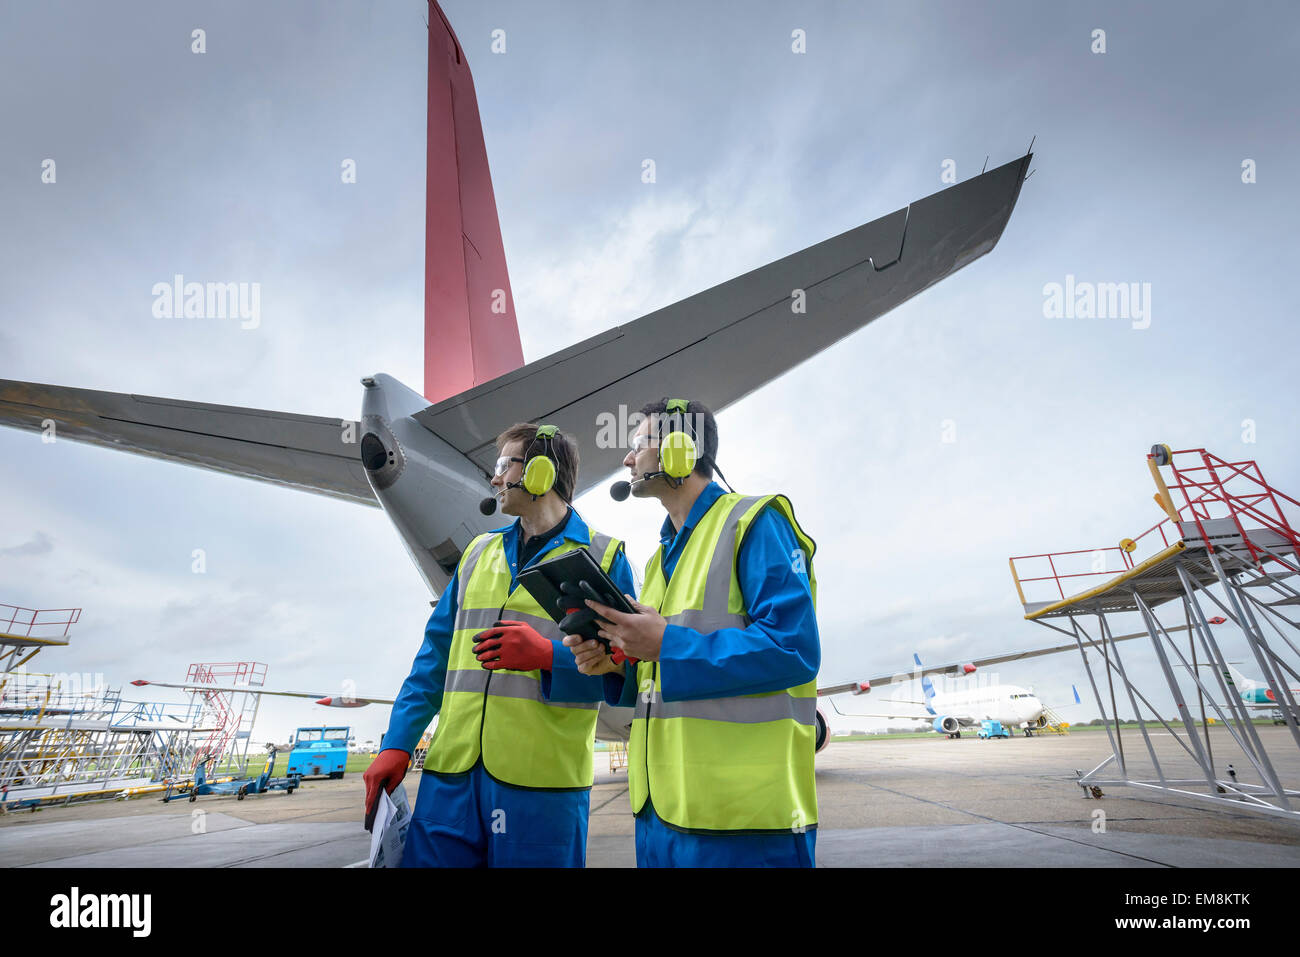 Airside engineers inspecting jet aircraft on runway - Stock Image